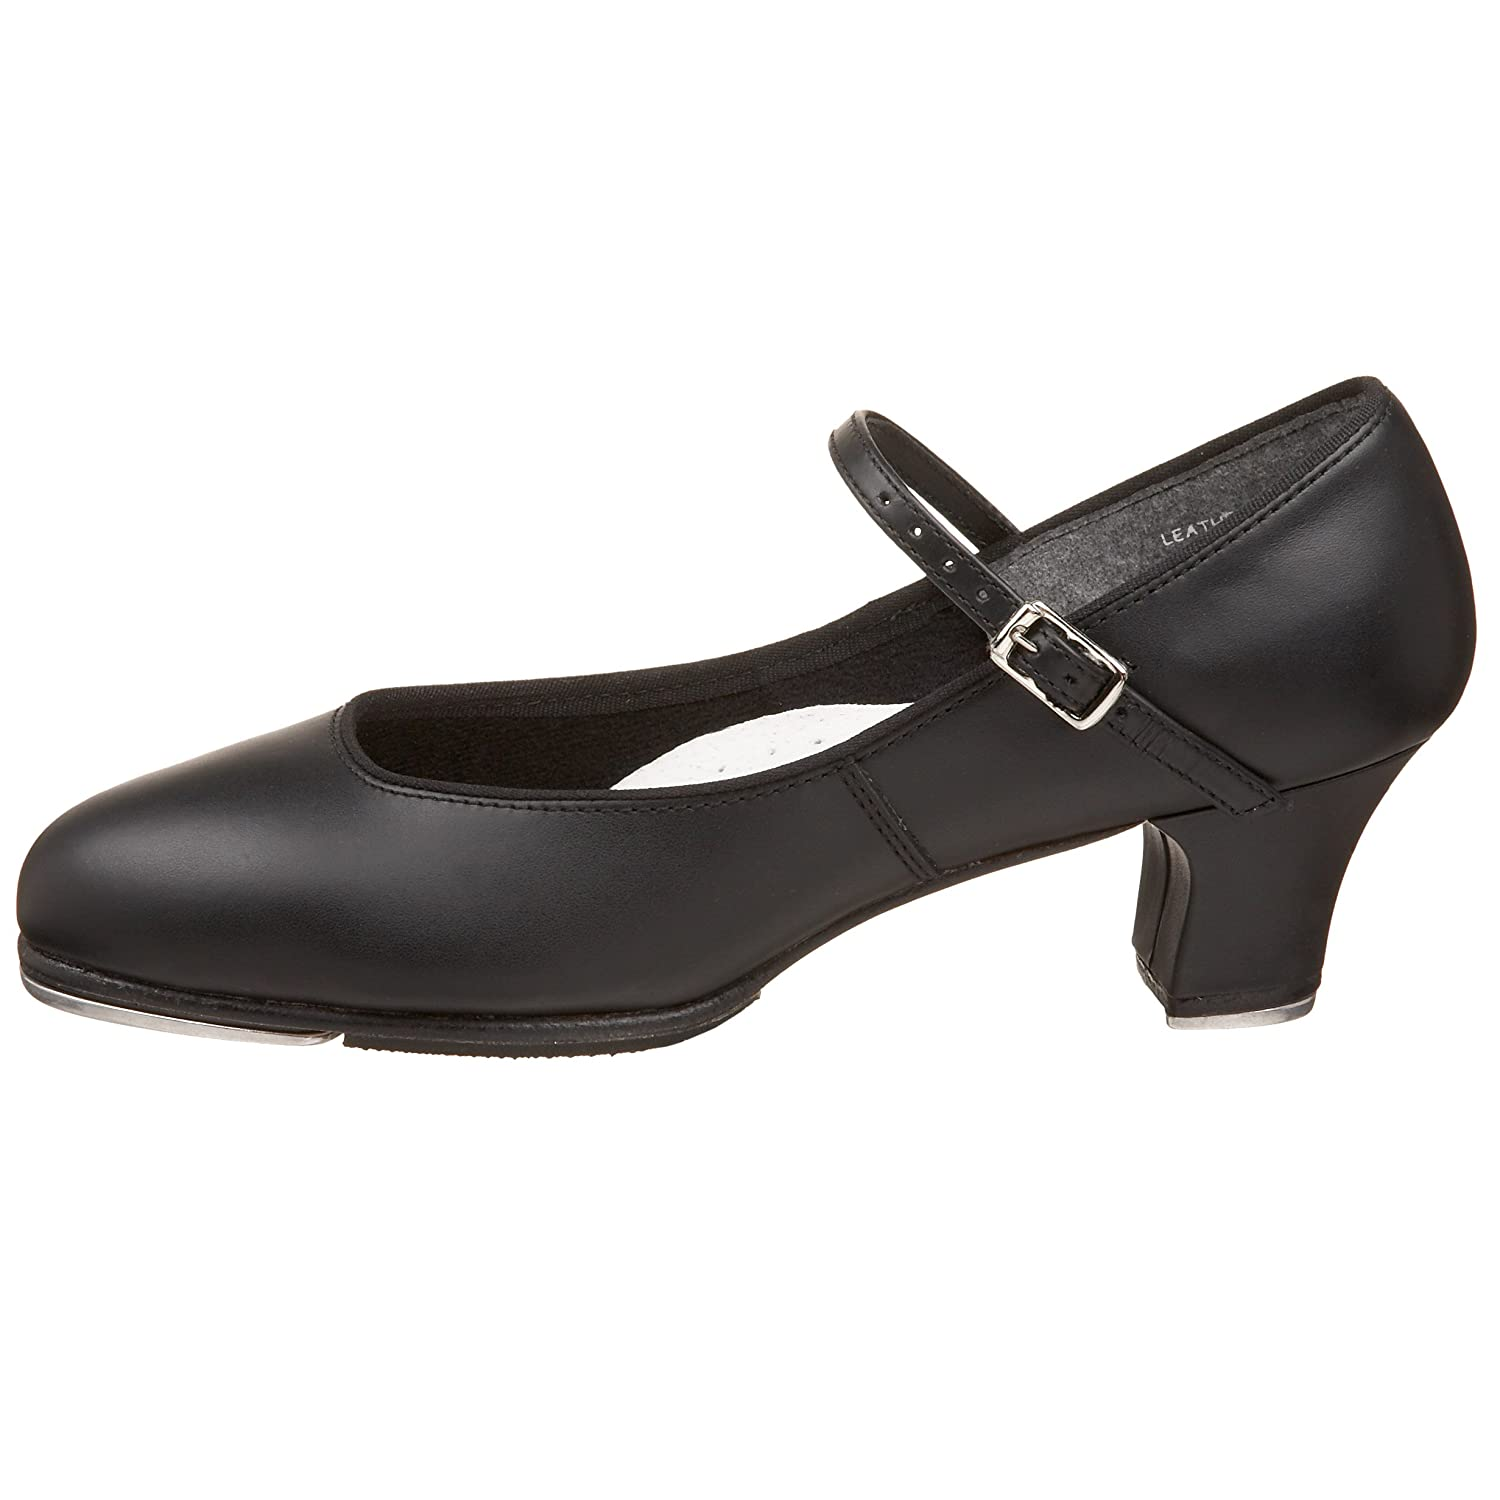 Capezio Women's Tap Jr. Footlight Tap US|Black Shoe B001CJBPSY 9 W US|Black Tap 40215a